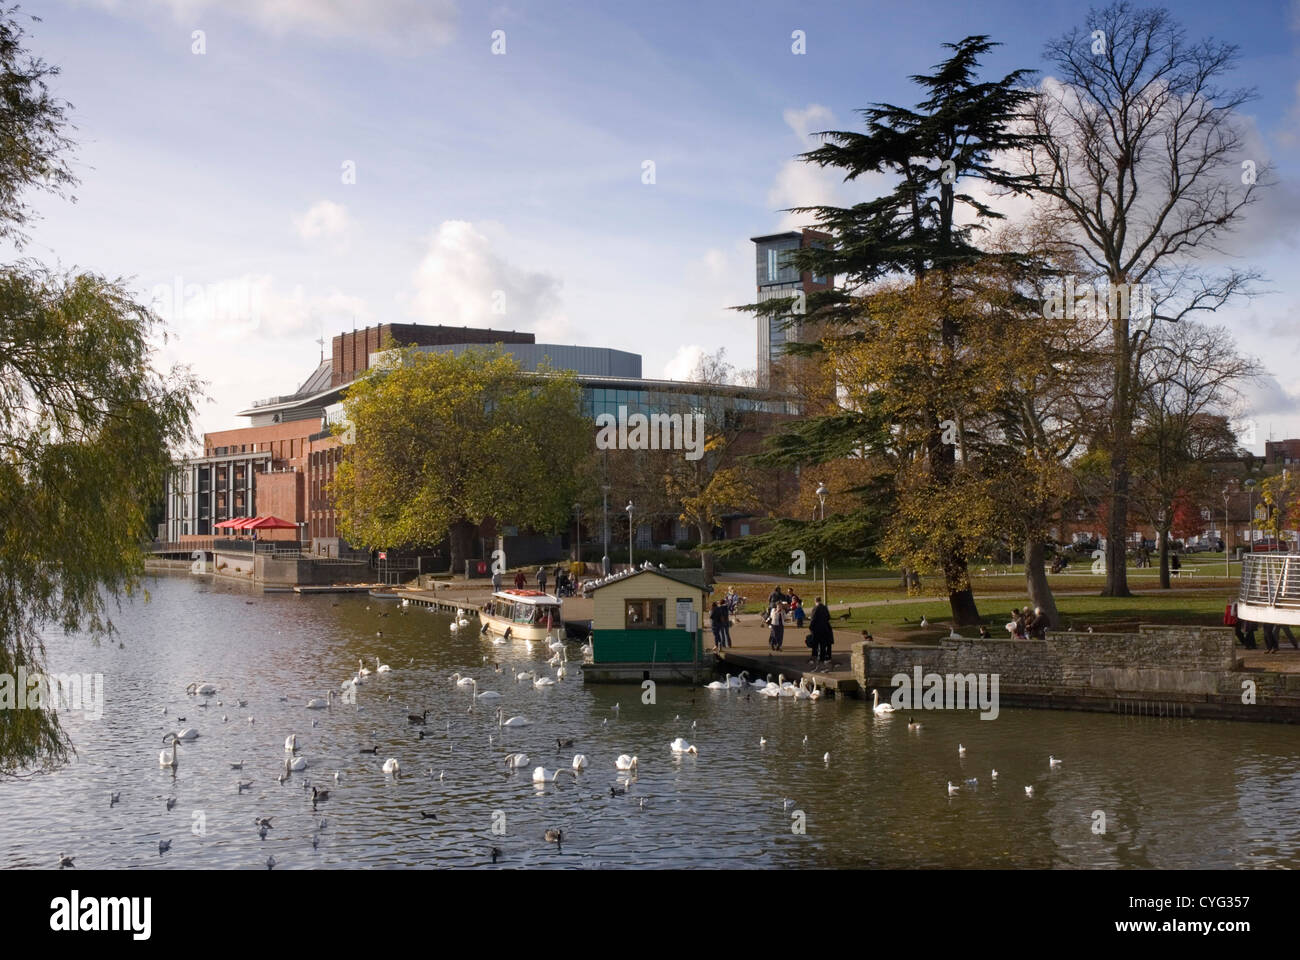 Warwickshire -Stratford upon Avon - view of the RSC theatre on west bank of the Avon - from the old Tramway Bridge Stock Photo